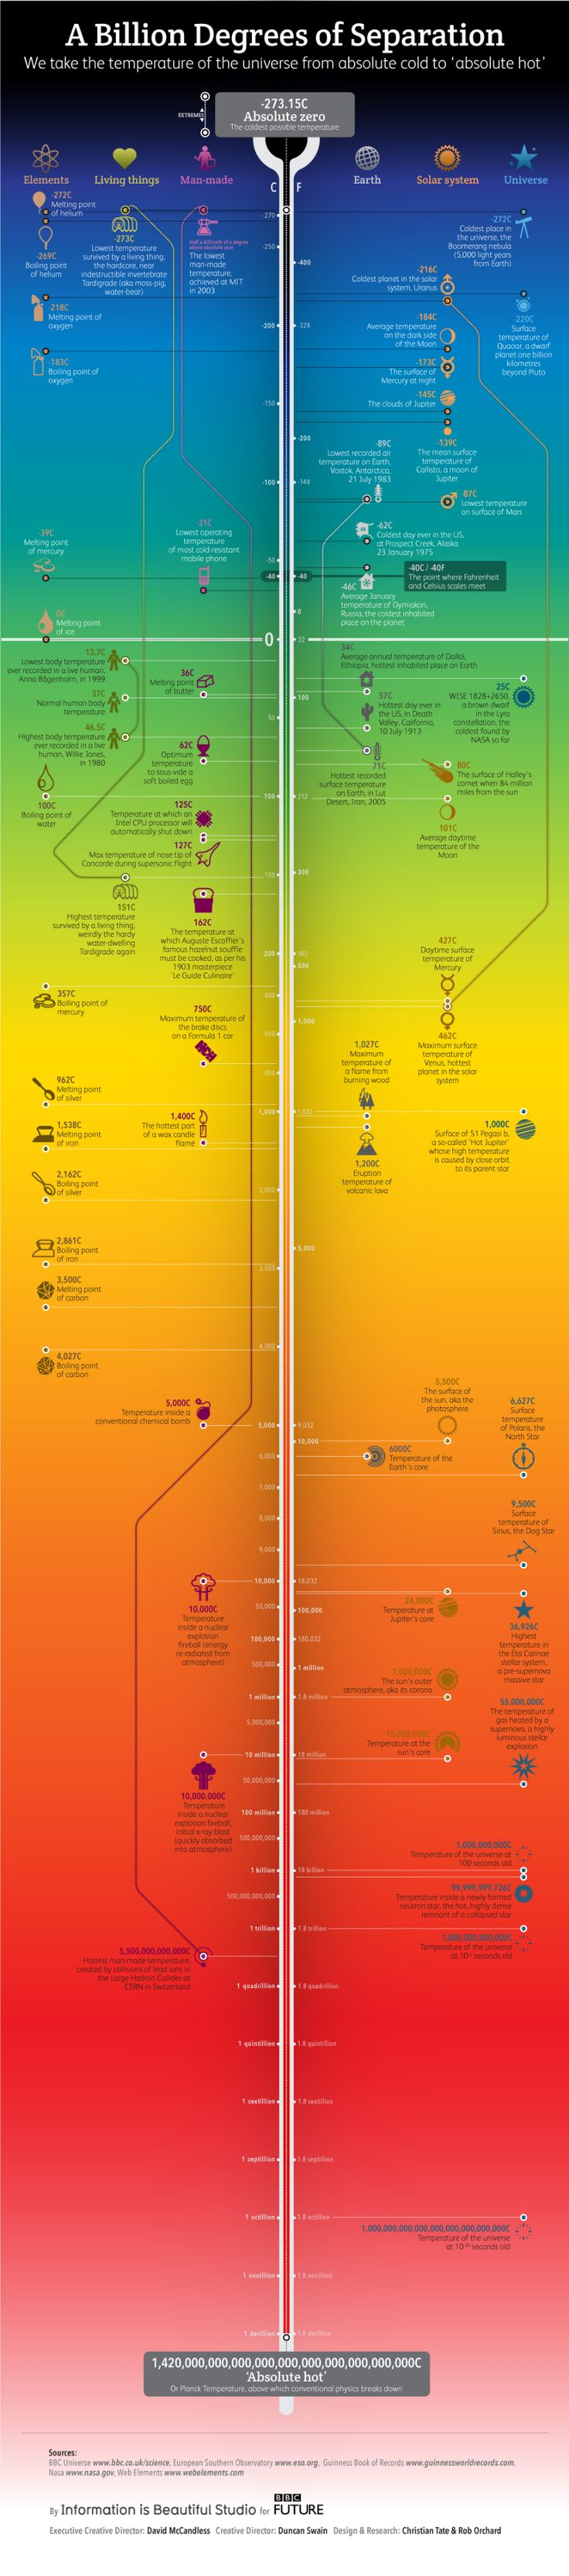 These are the hottest and coldest temperatures according to conventional physics